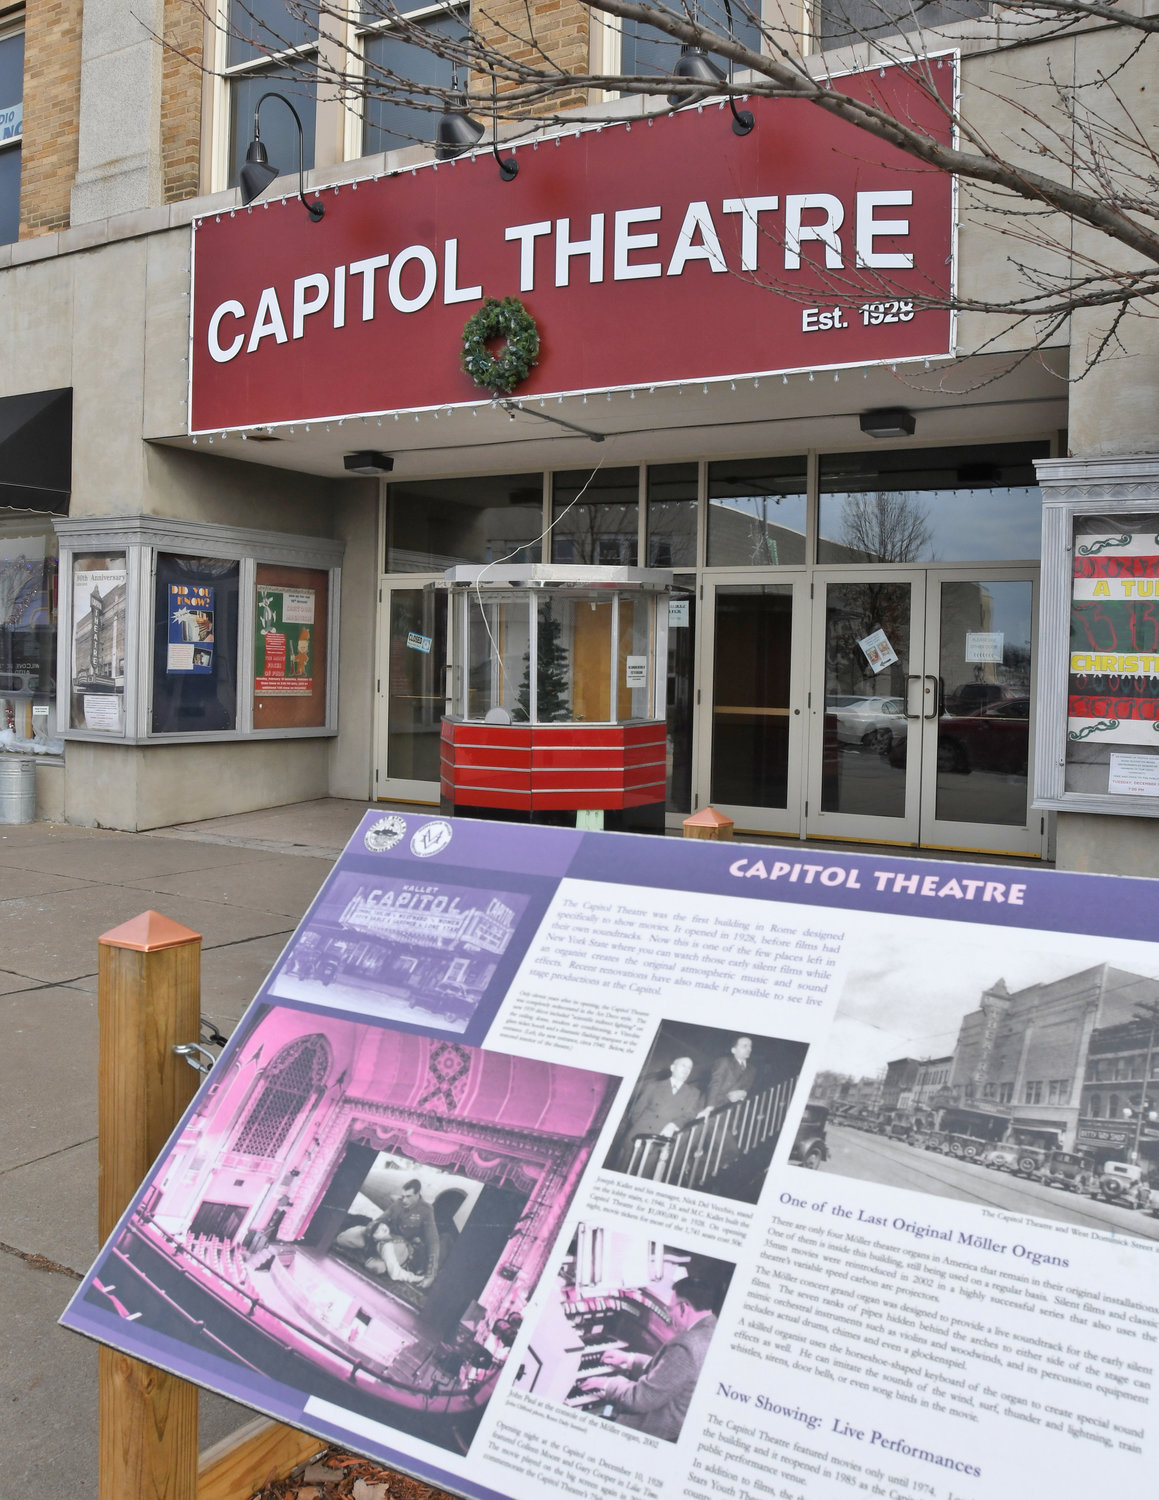 NOW PLAYING — The Capitol Theatre, 220 W. Dominick St., will receive $2.5 million for interior and exterior renovations under through the Downtown Revitalization Initiative. Notably, the theatre will commission a replica of its original 1928 marquee and vertical sign, expected to be installed in 2020.